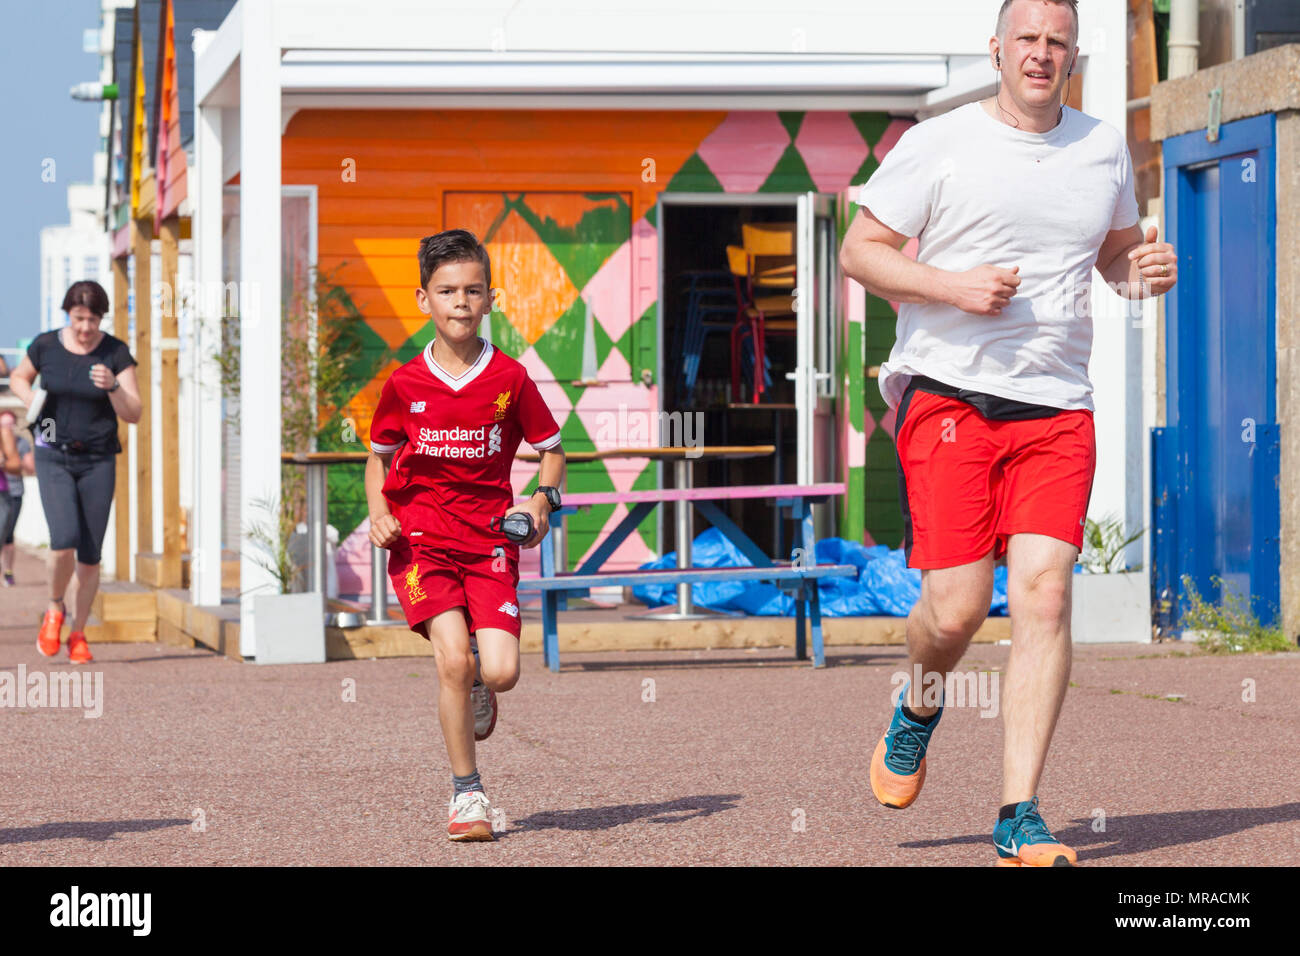 A young jogger wearing a liverpool shirt running along the hastings seafront participating in park run, hastings, east sussex, uk - Stock Image